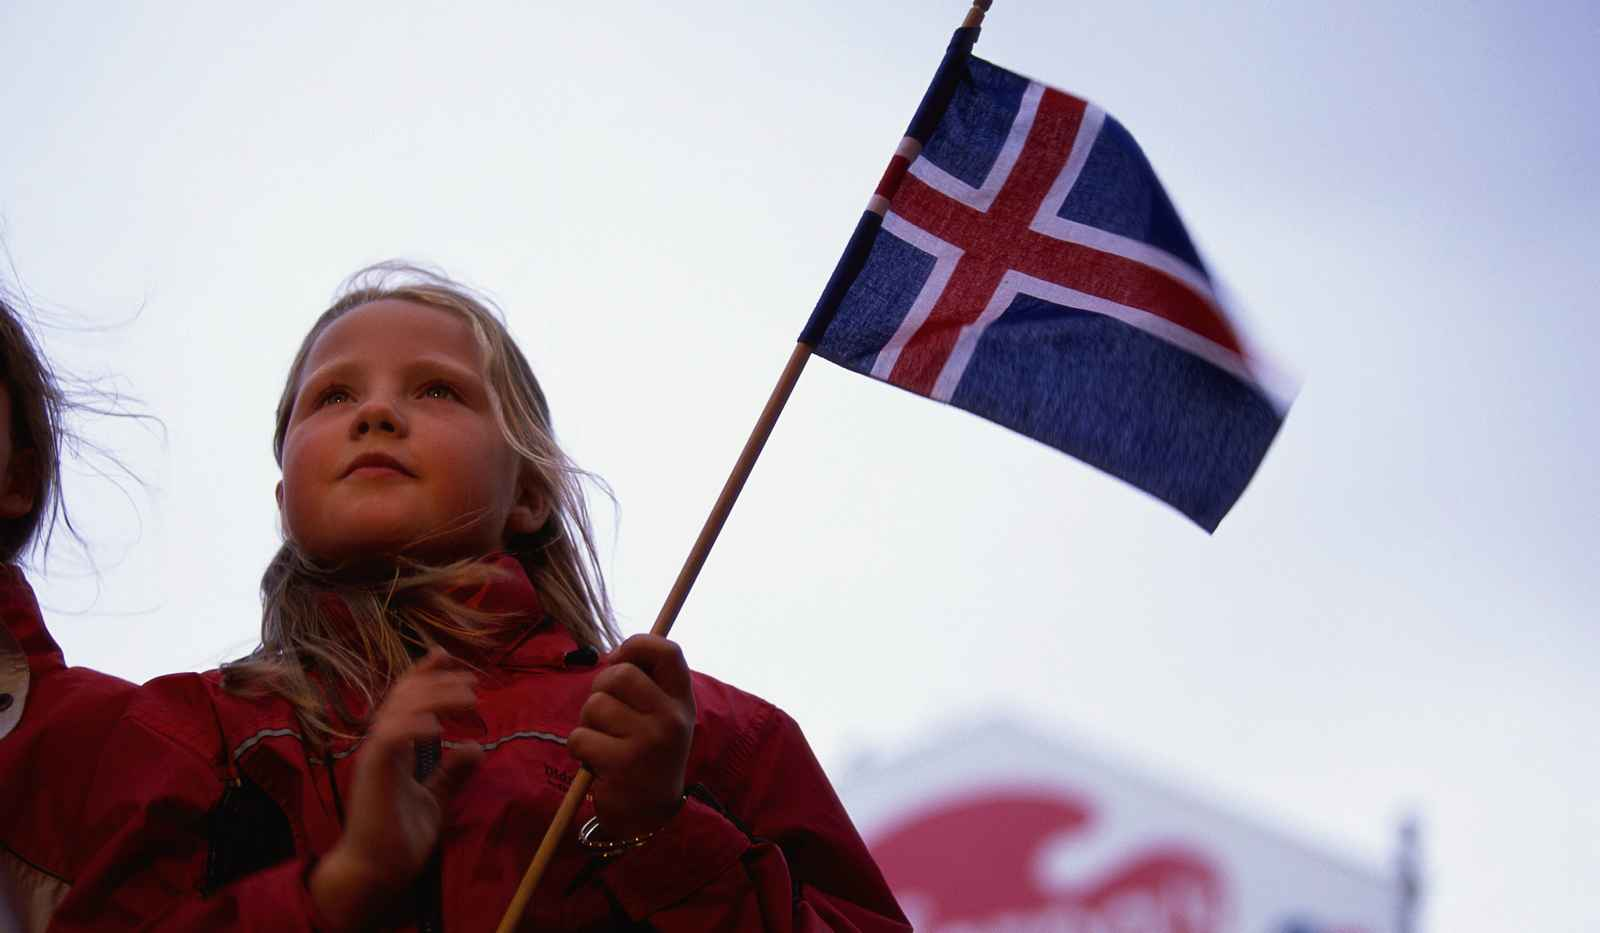 June 2003, Reykjavík, Iceland --- A young girl holding an Icelandic flag celebrates her nation's independence (June 17) on the National Day of Iceland in Reykjavik. --- Image by © Paul A. Souders/CORBIS